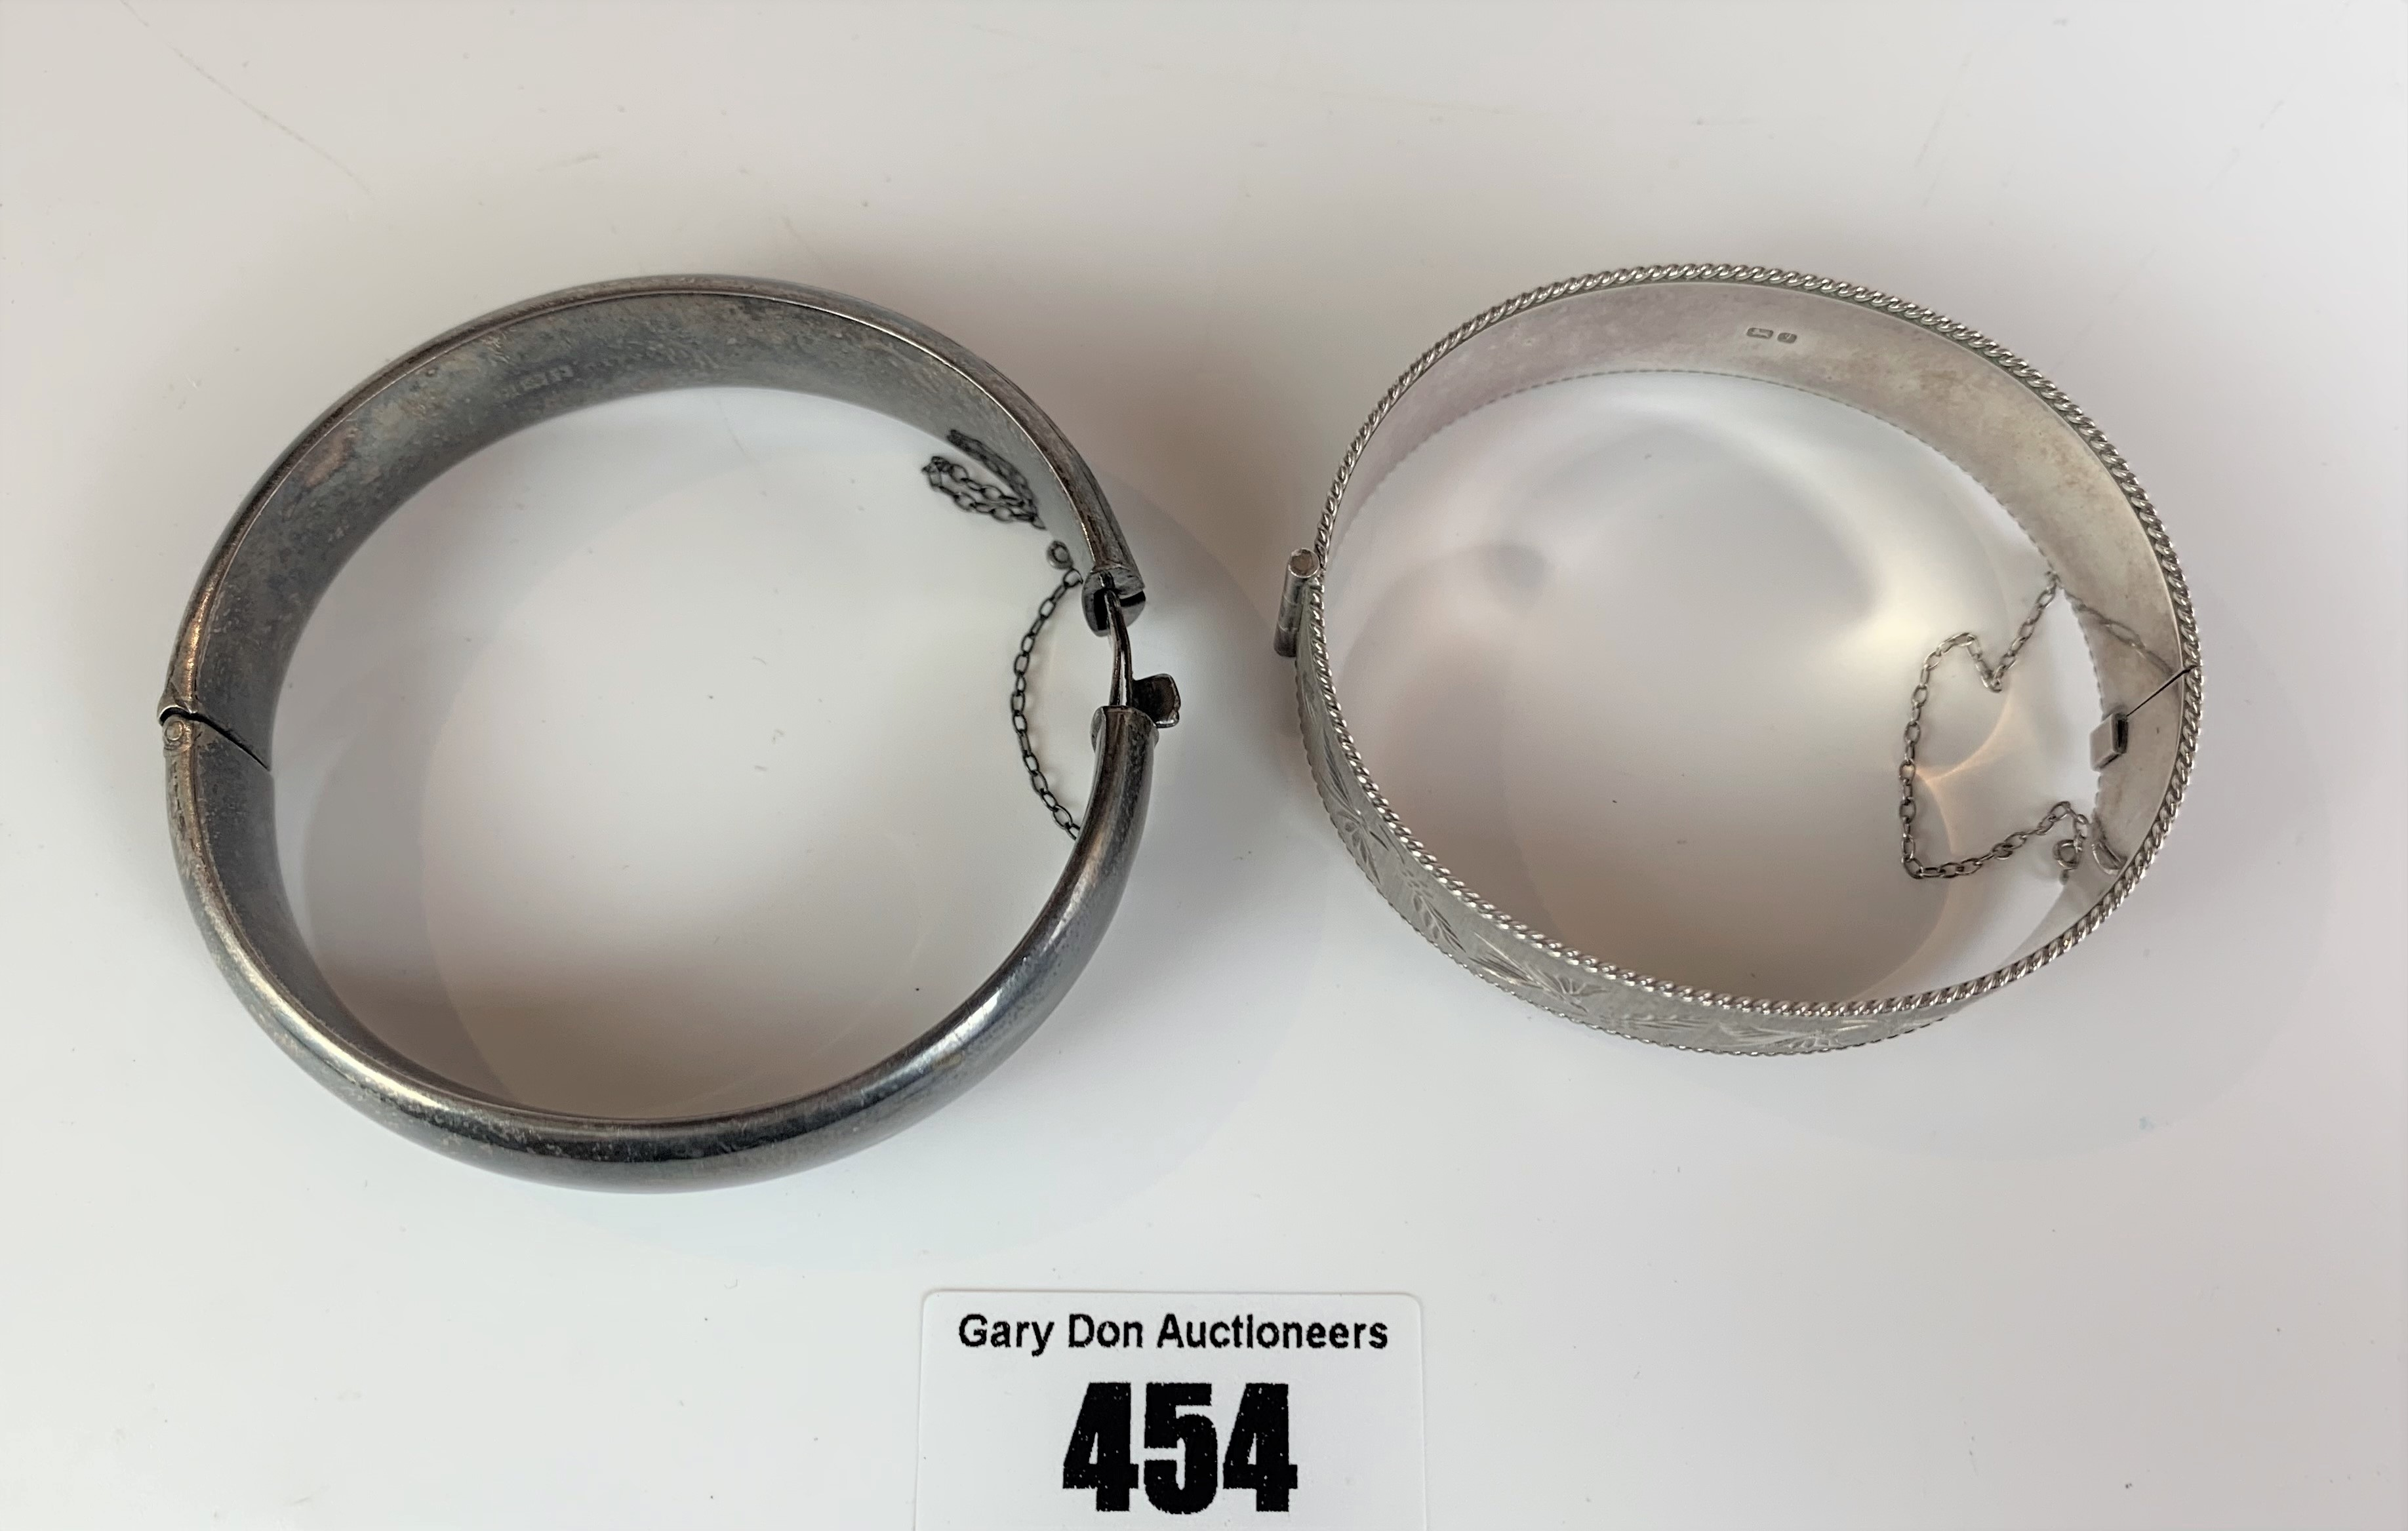 2 silver engraved bangles, total w: 1.5 ozt - Image 2 of 7